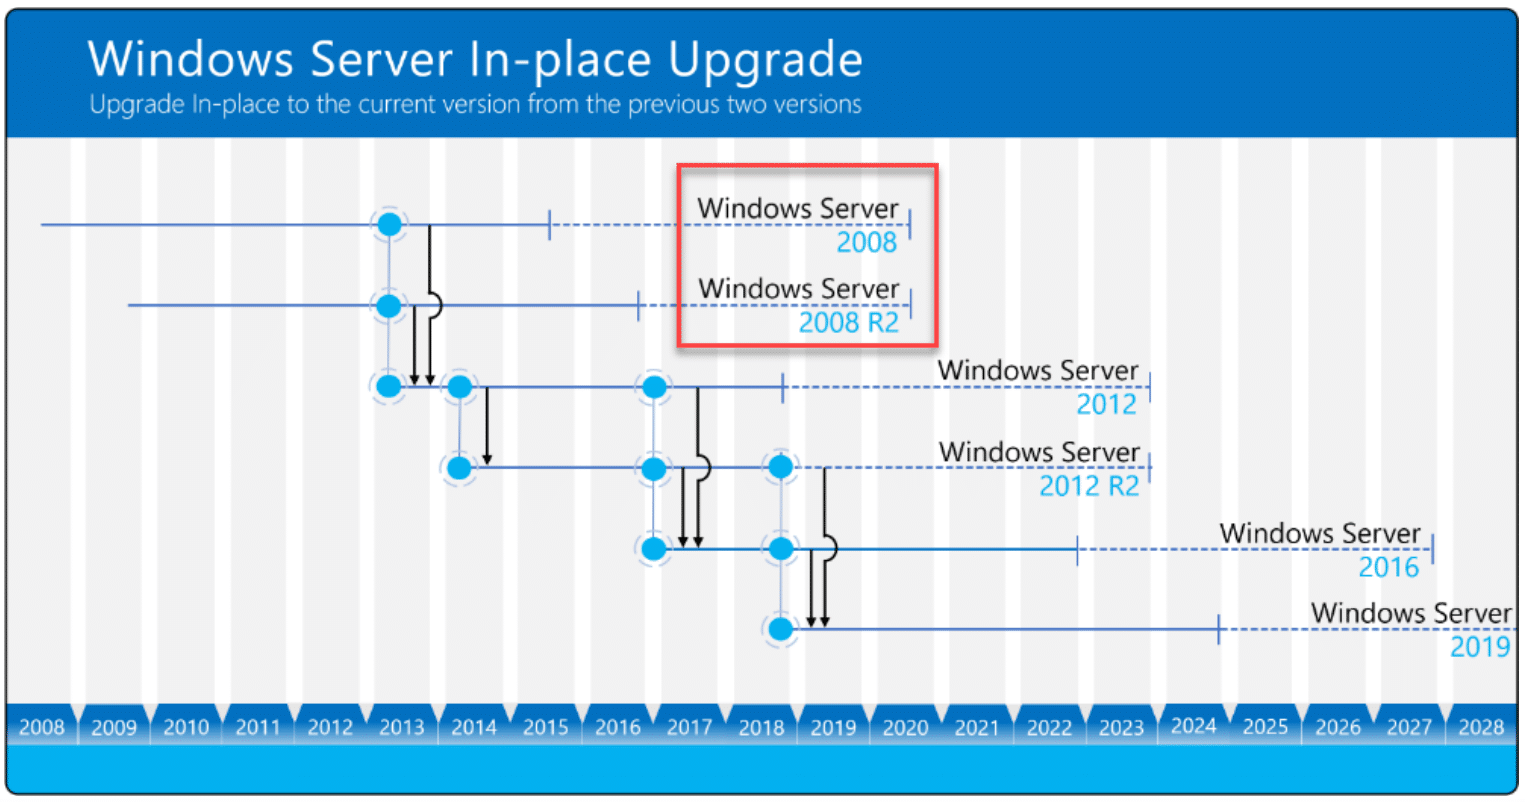 Windows Server 2008 End of Life: Supported in-place upgrades for various Windows Server operating systems (Image courtesy of Microsoft)